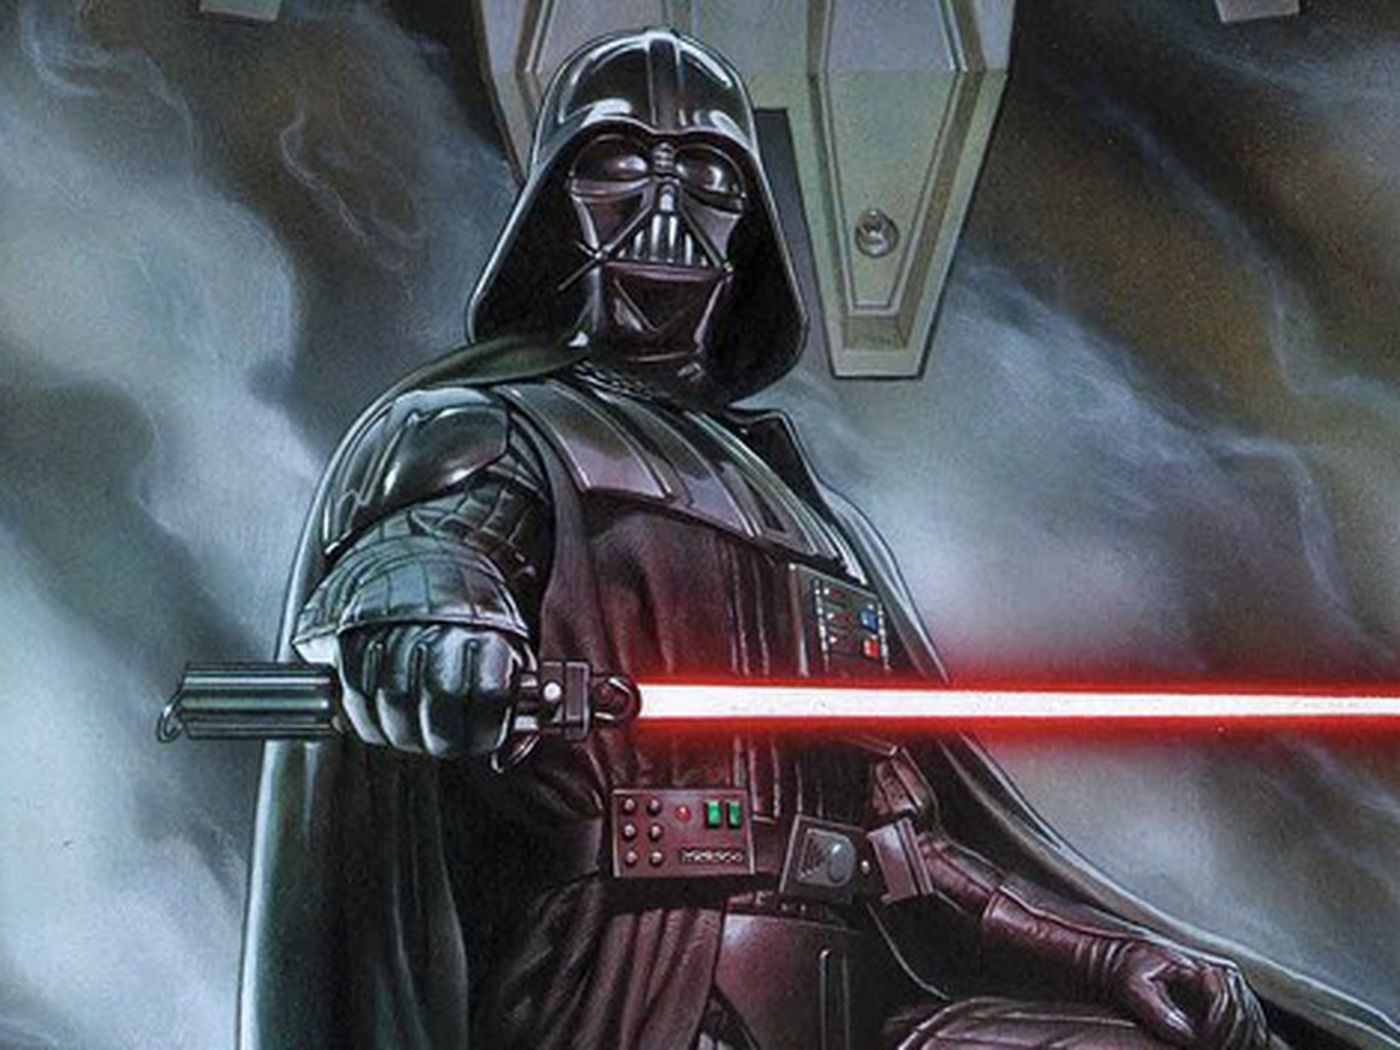 Can Darth Vader really be both kid-friendly and frightening? - The Verge